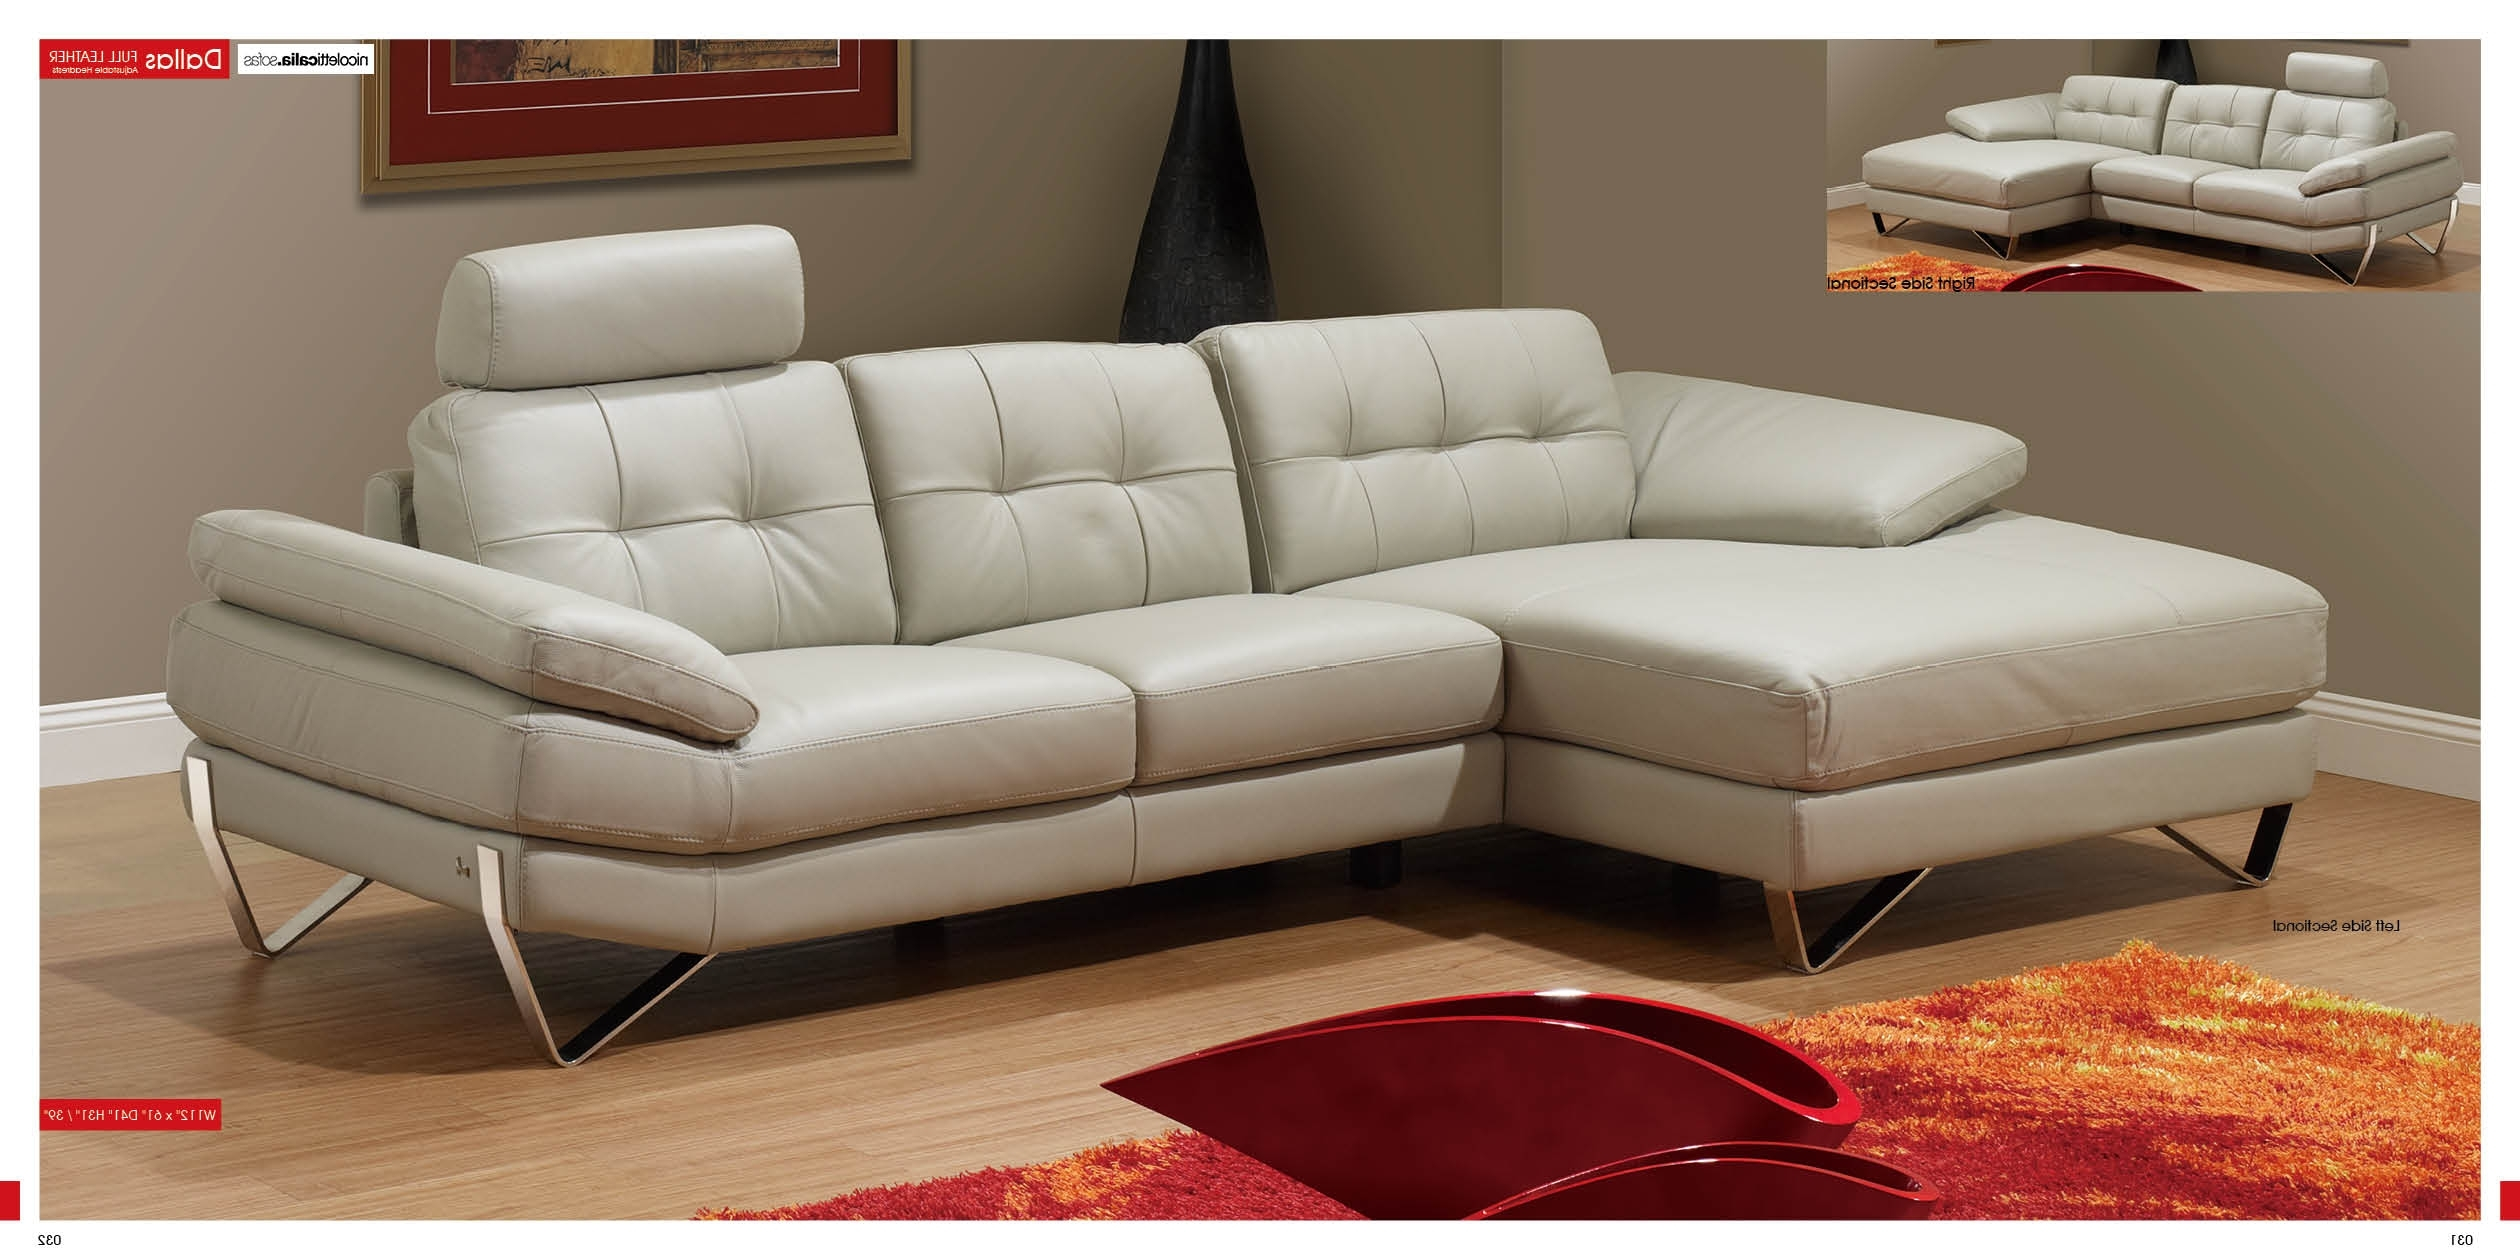 20 Best Collection of Dallas Sectional Sofas